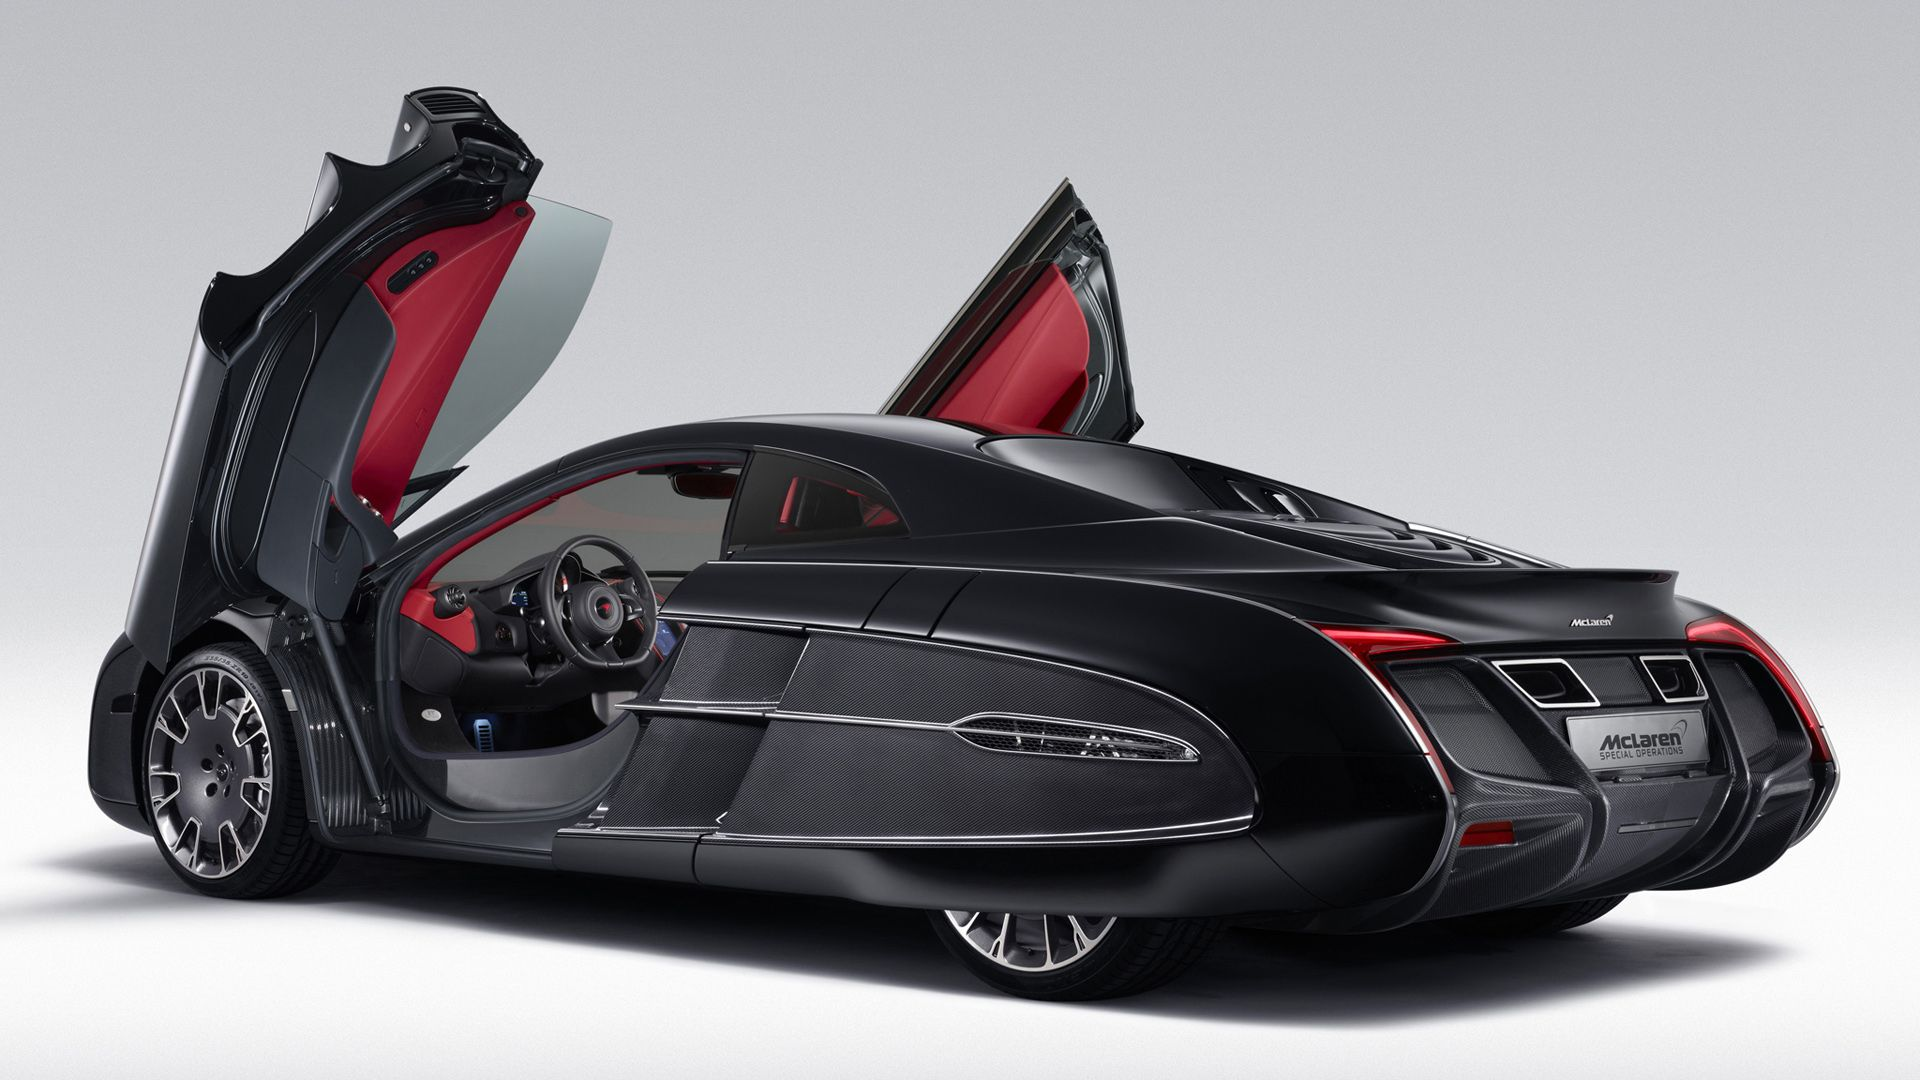 McLaren X-1 Concept Gallery   Cars, Vehicle and Wheels